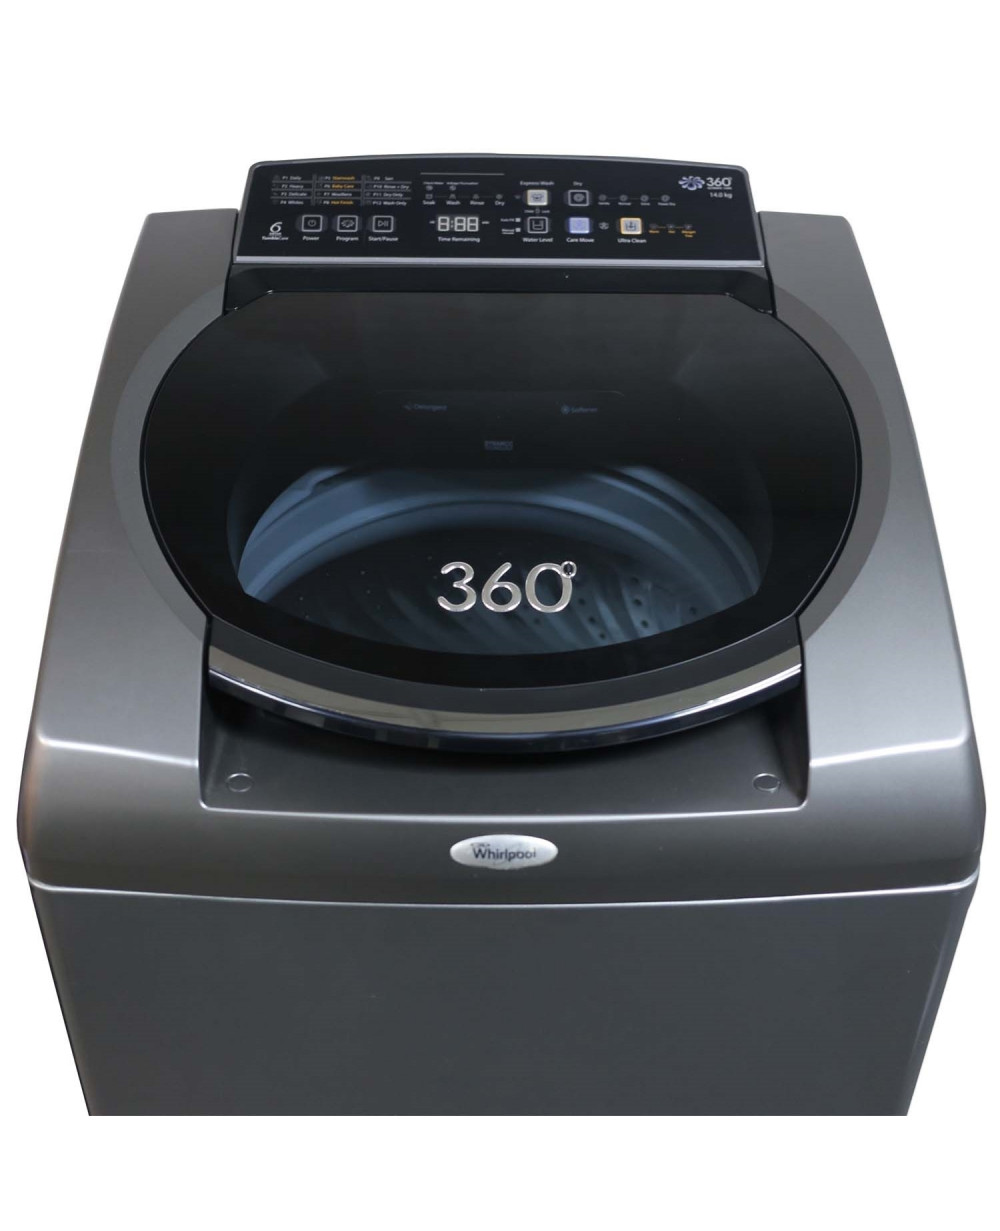 whirlpool washing machine top loading 14 ltr 360 ULTIMATE CARE 14 kg BS